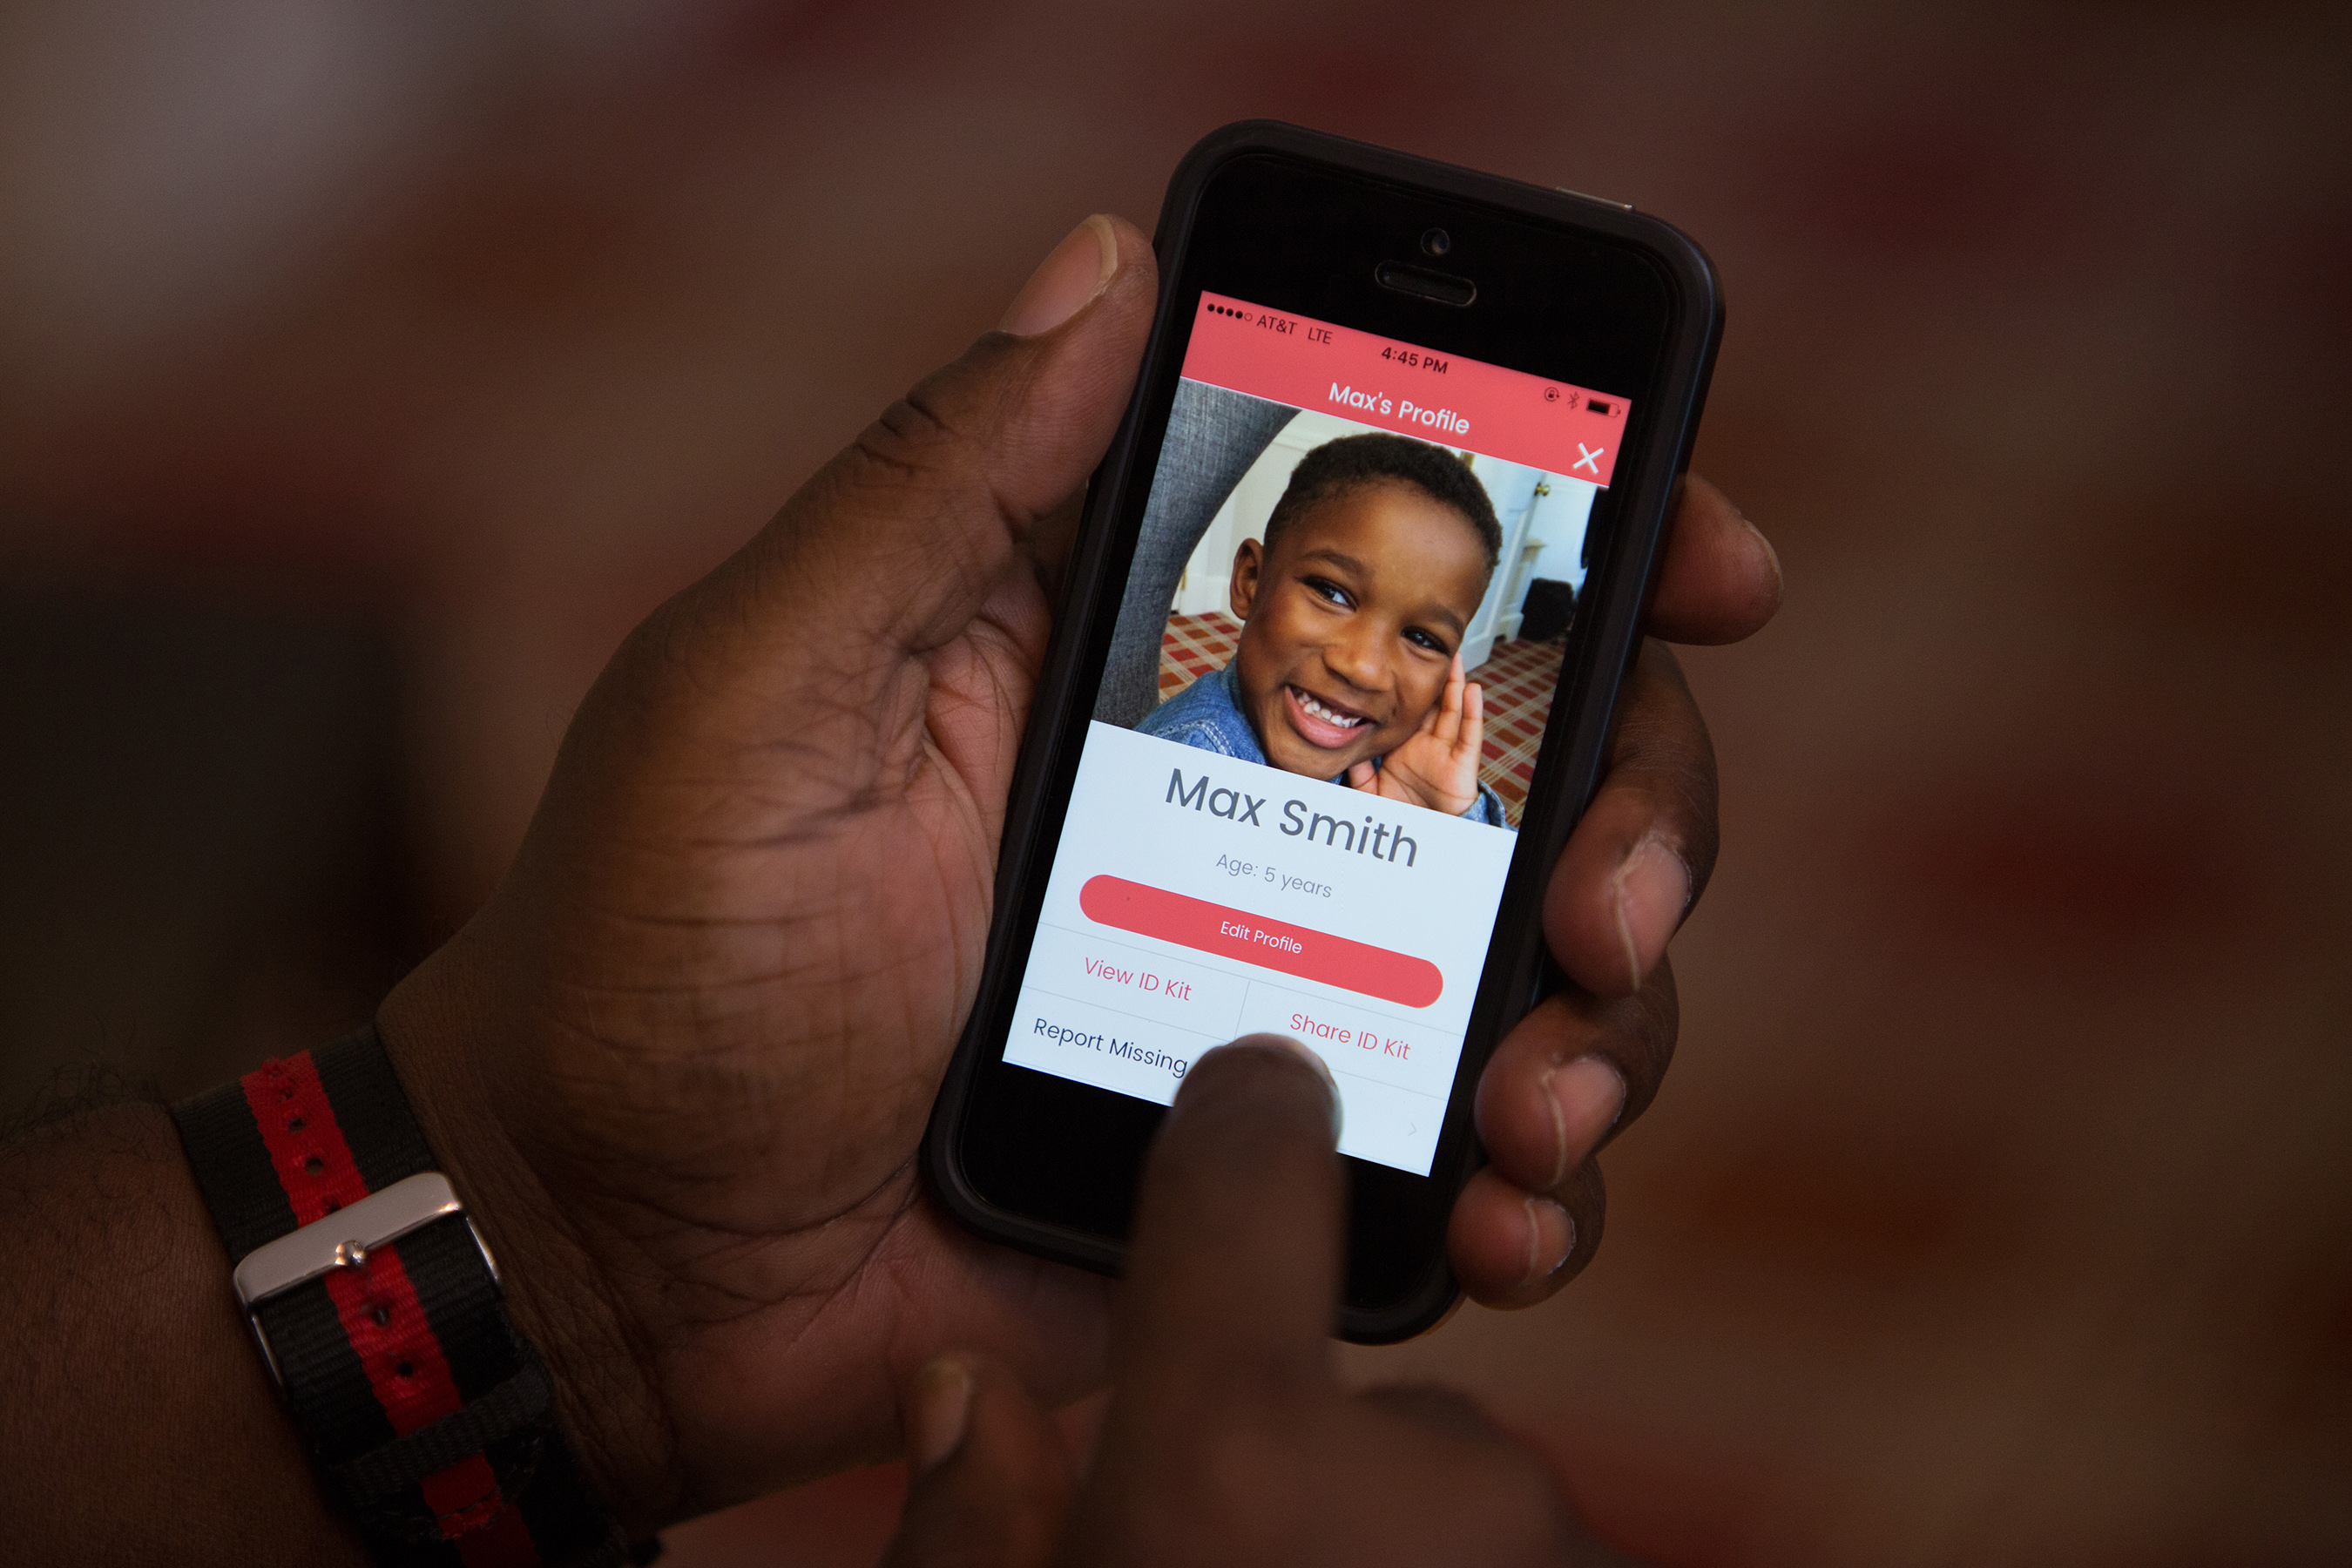 With the touch of a button, the app can send an up-to-date photo, descriptive information and digital fingerprints to law enforcement if a child goes missing. The app will remind users when it's time to update the photo of their child.